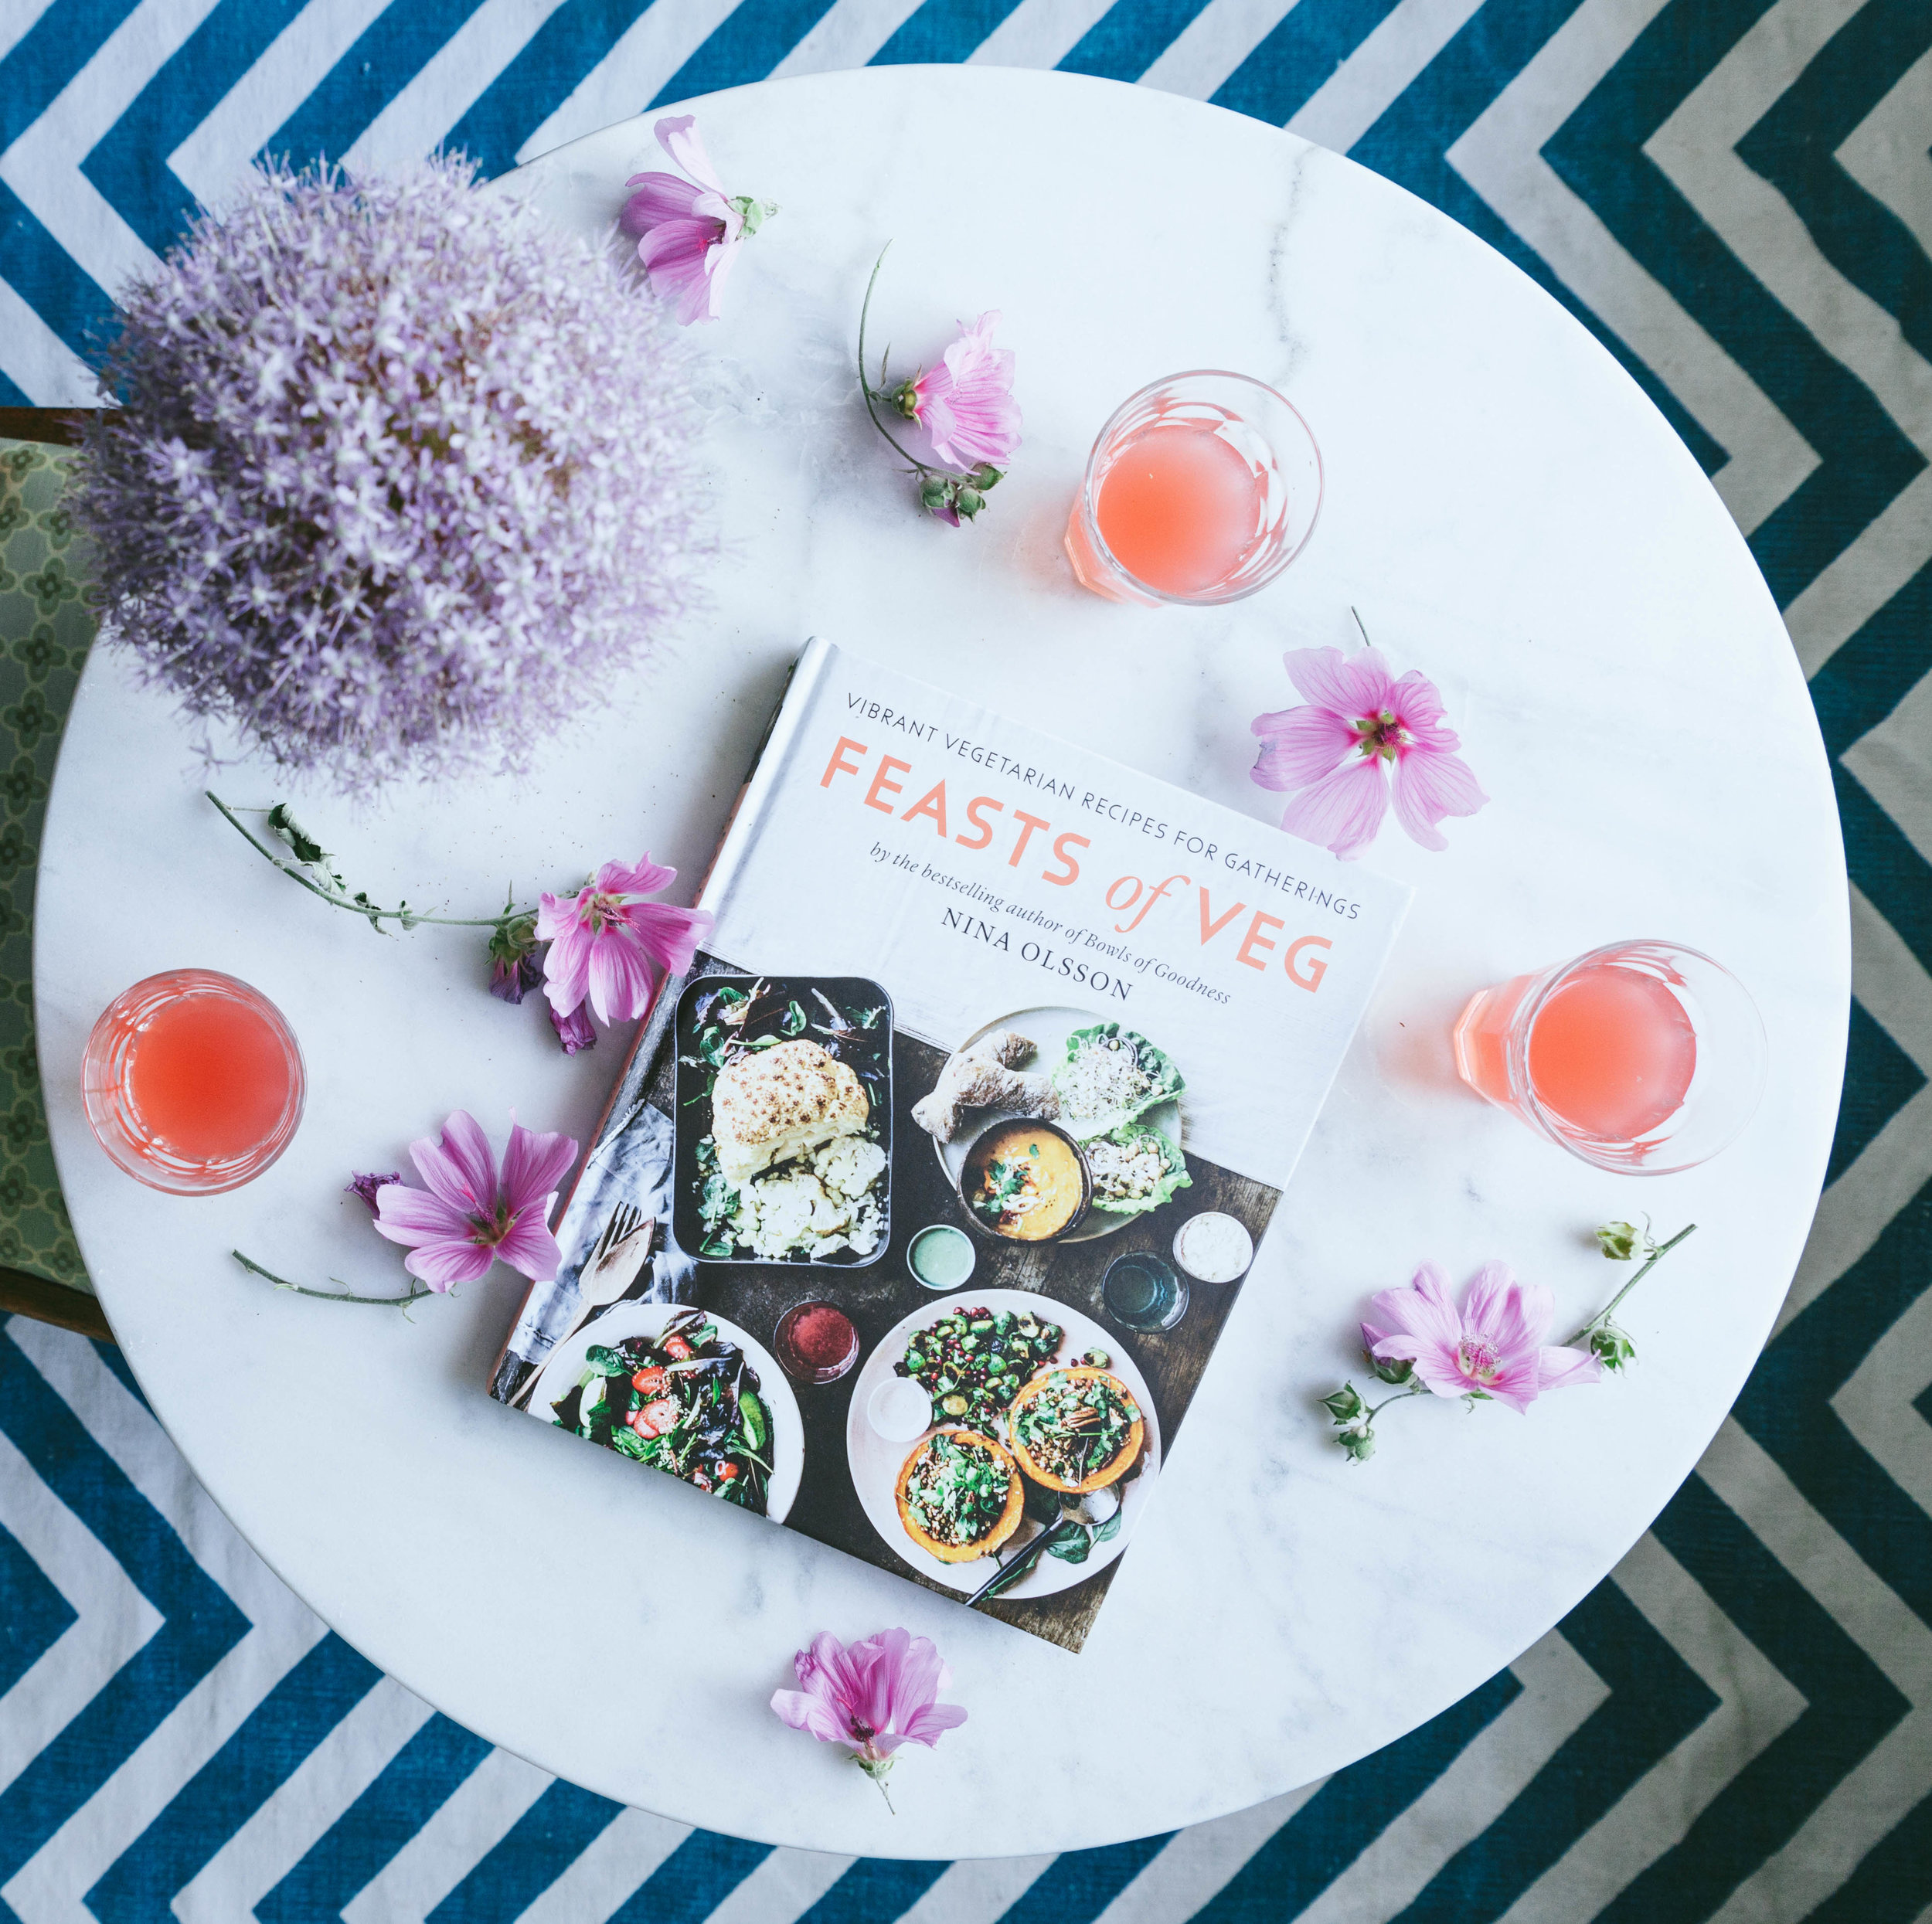 Nourish Atelier cookbook giveaway - The Little Plantation